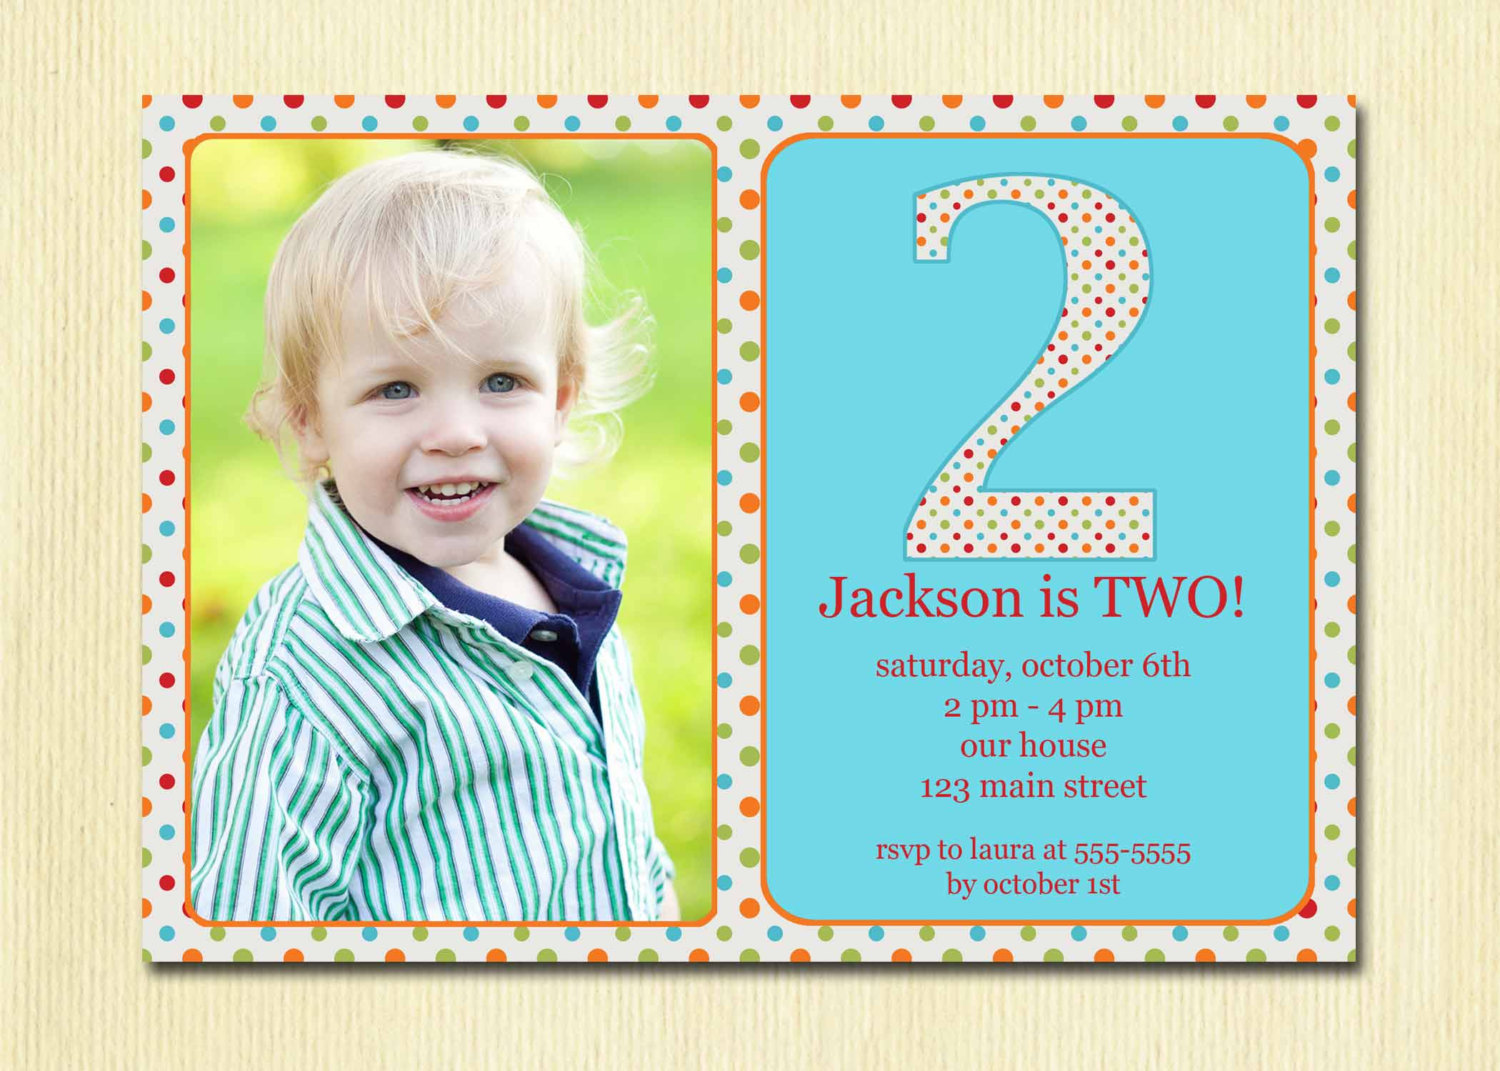 birthday invitation message for 1 year old ; 2-year-old-birthday-invitation-wording-ideas_year-old-birthday-invitation-wording-ideas-invitations-on-th-birthday-invitation-wording